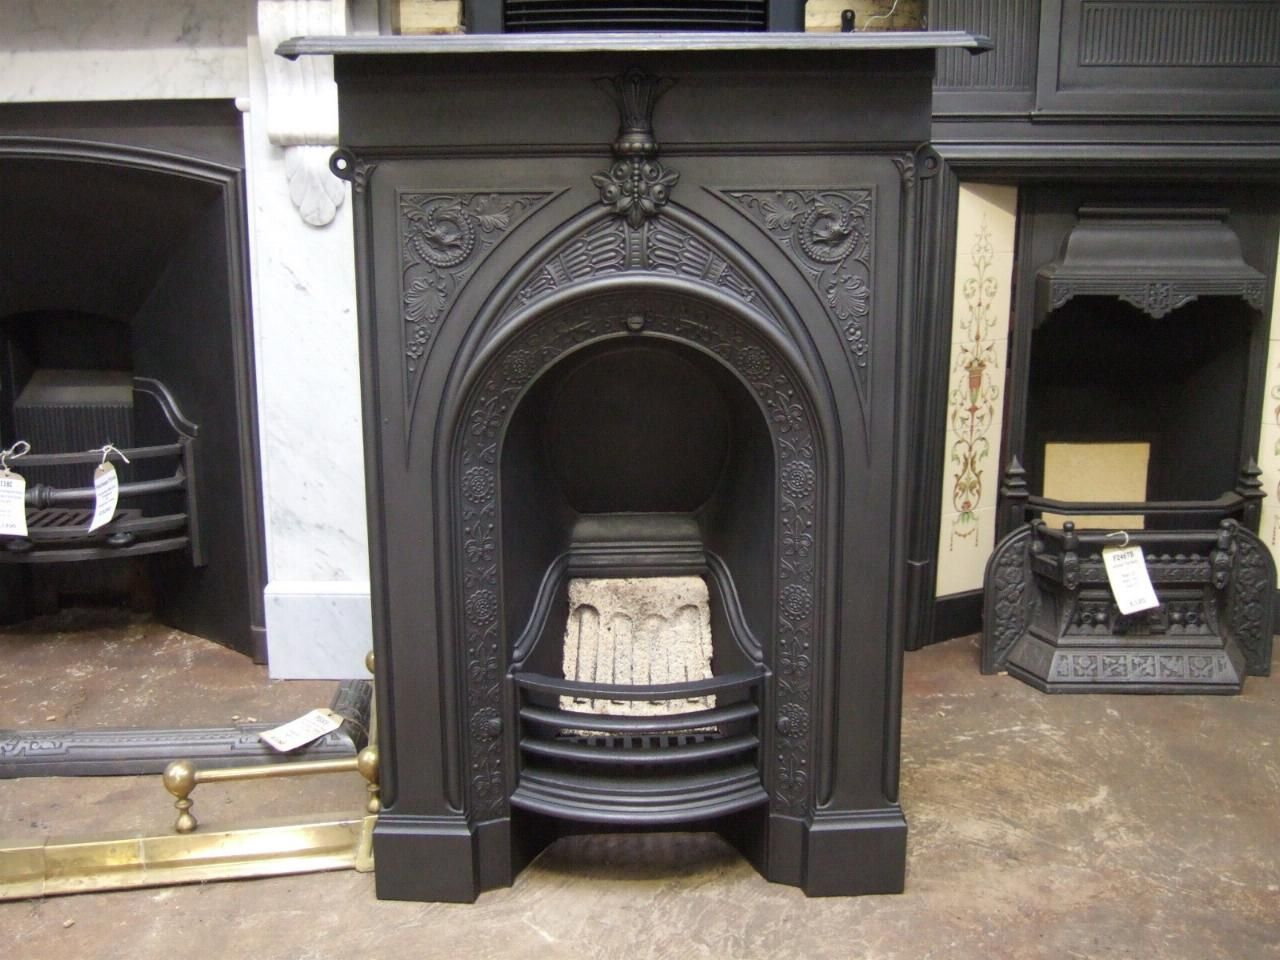 Try This Site Http Victorianfireplacestore Co Uk For More Information On Victorian Fireplaces For Bedroom